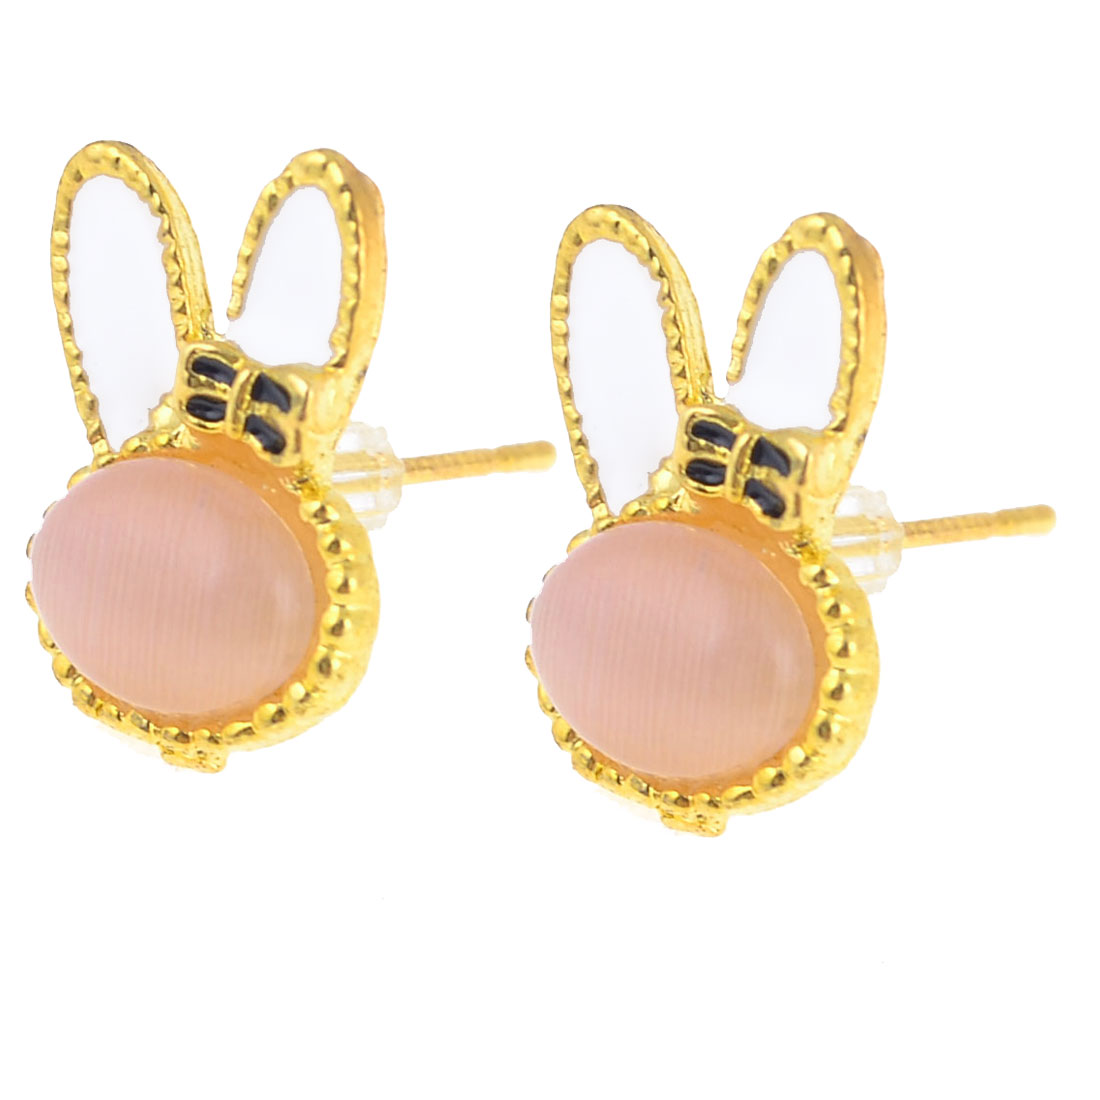 Pair Faux Crystal Rabbit Accent Ear Stud Earrings Gold Tone for Women